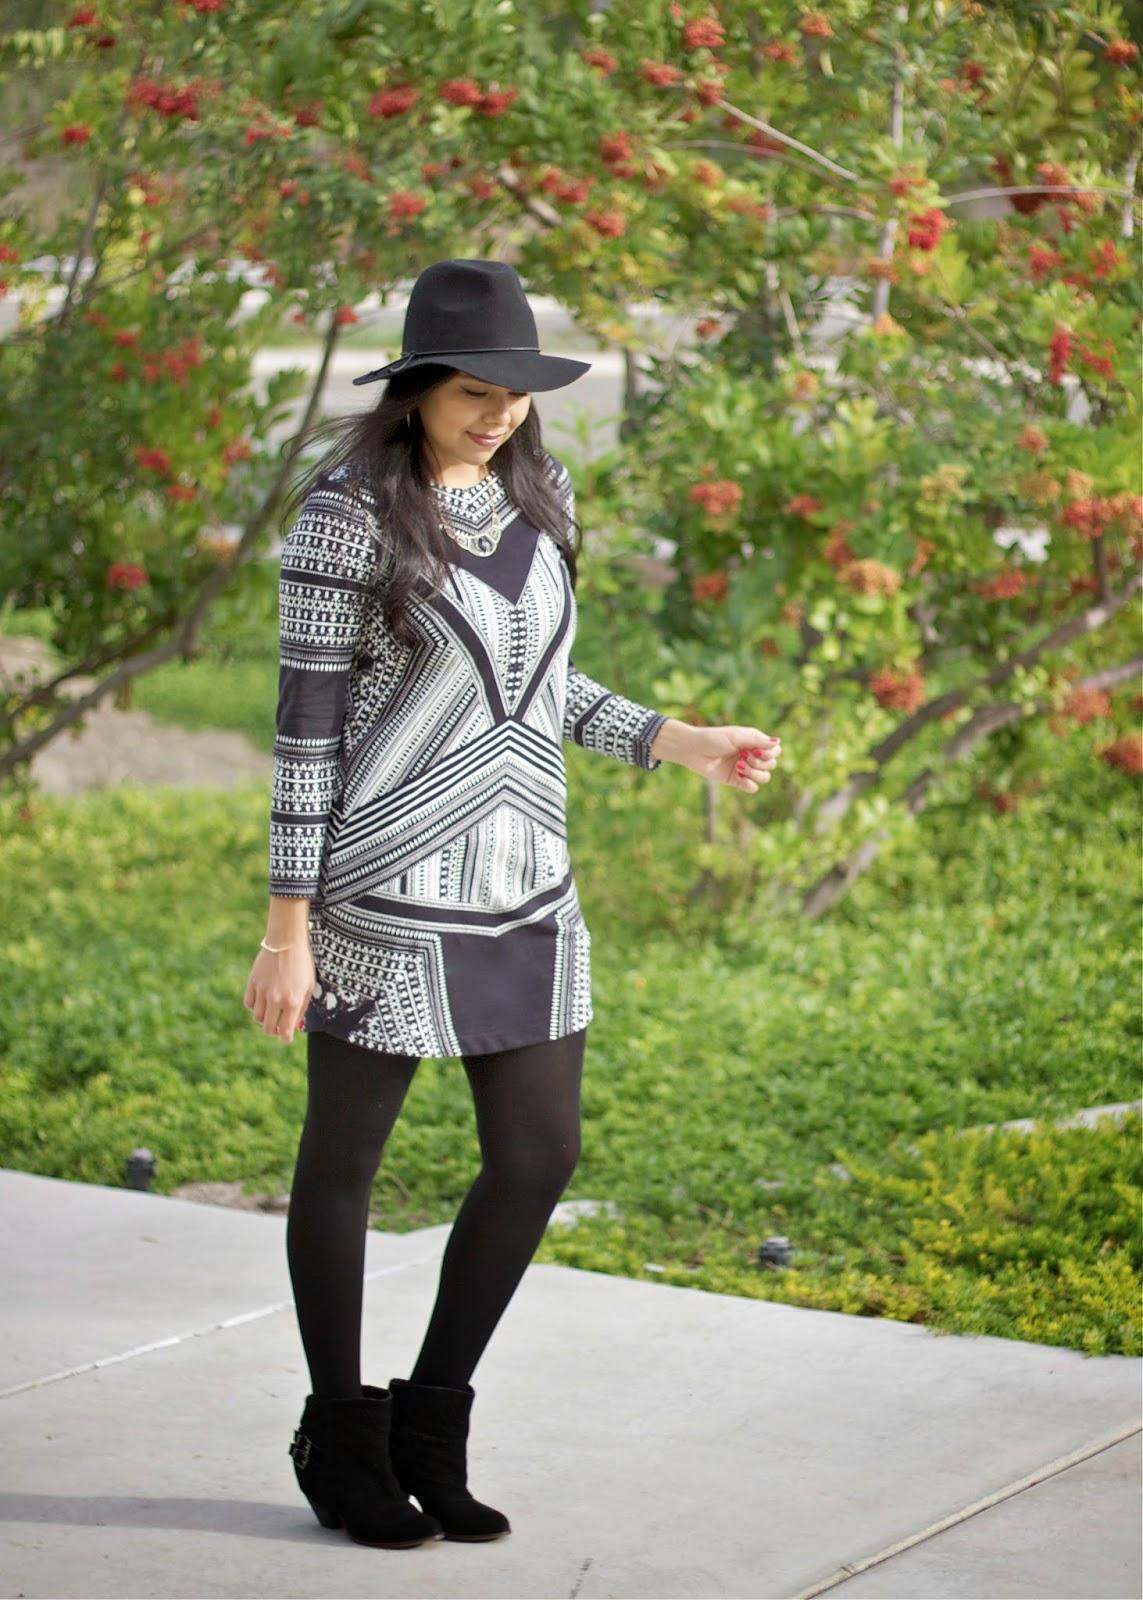 fall 2014 fashion, fall 2015 fashion, tribal print dress, hm dress, H&M dress, H&M black and white dress, H&M blogger, how to wear a tribal dress, naughty monkey boots, naughty monkey booties, black boots from NM